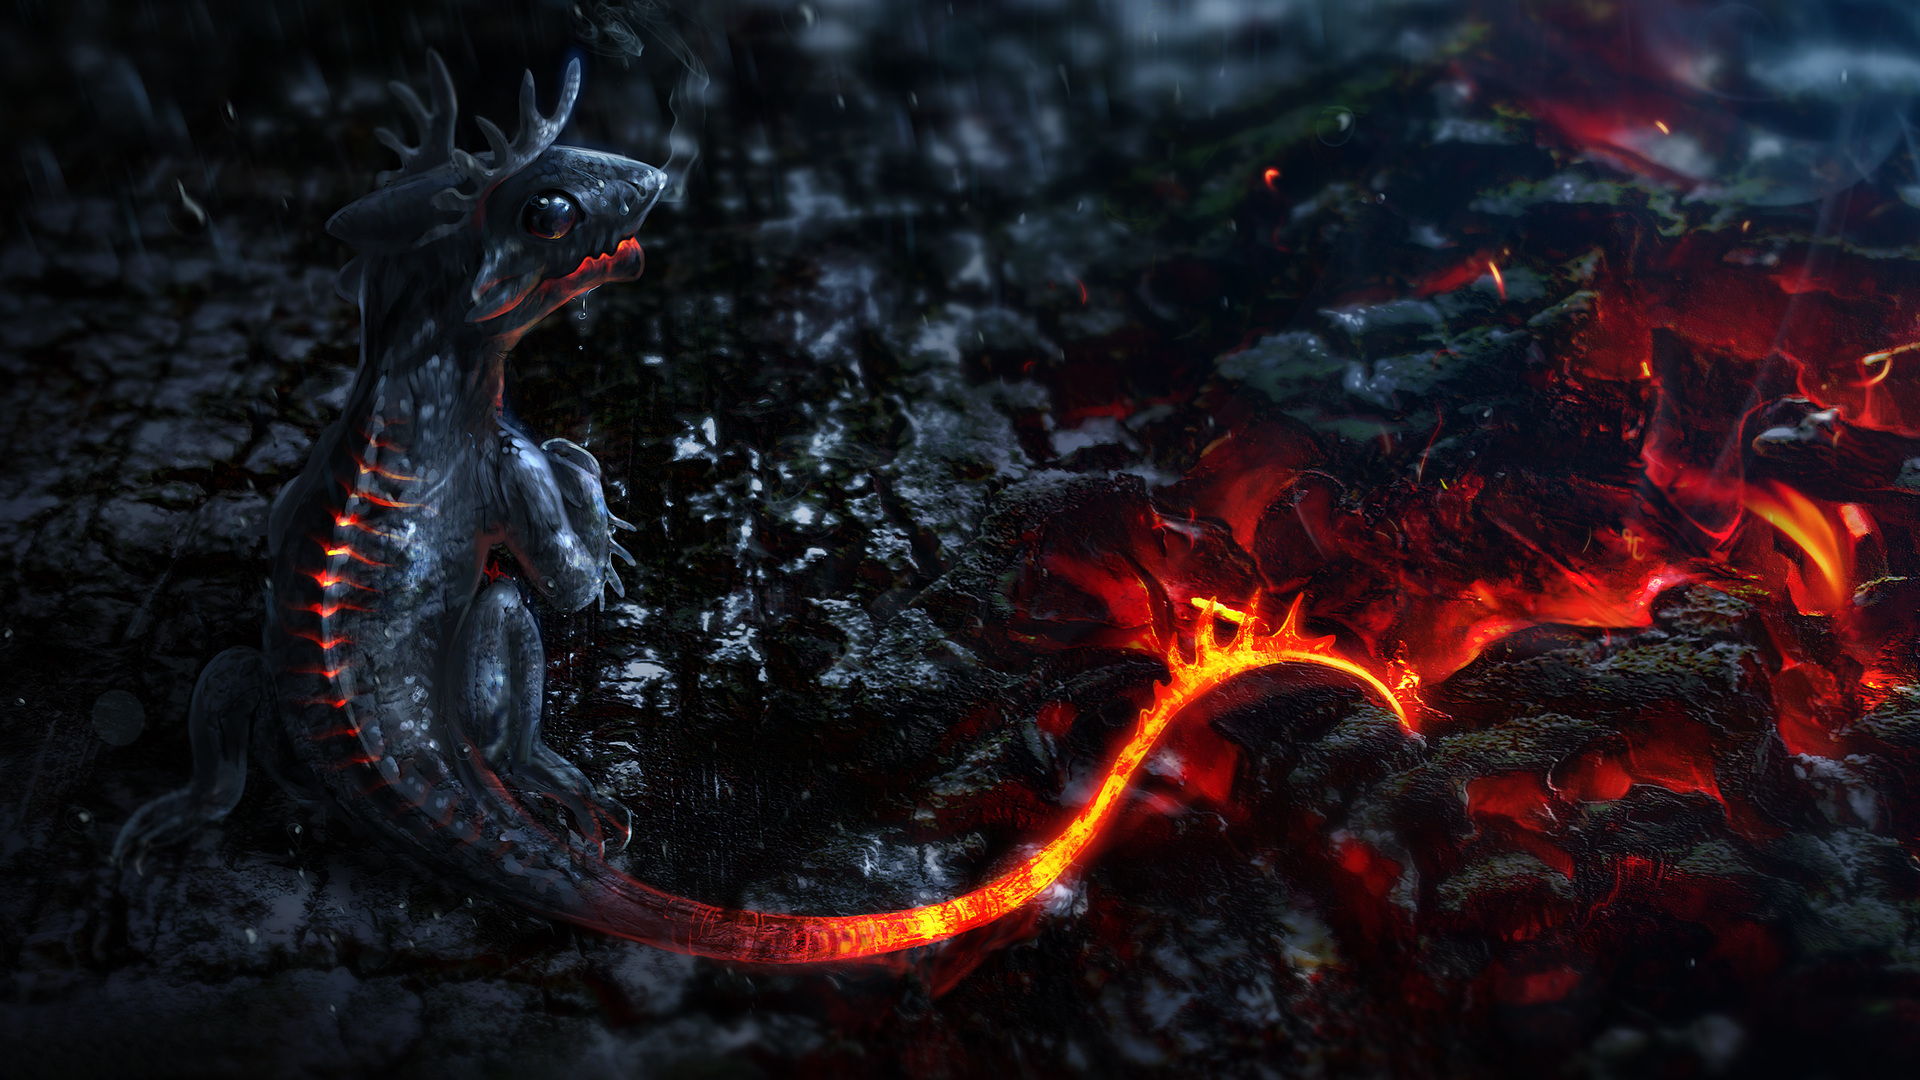 Dragon Desktop Wallpaper 1920x1080 1920x1080